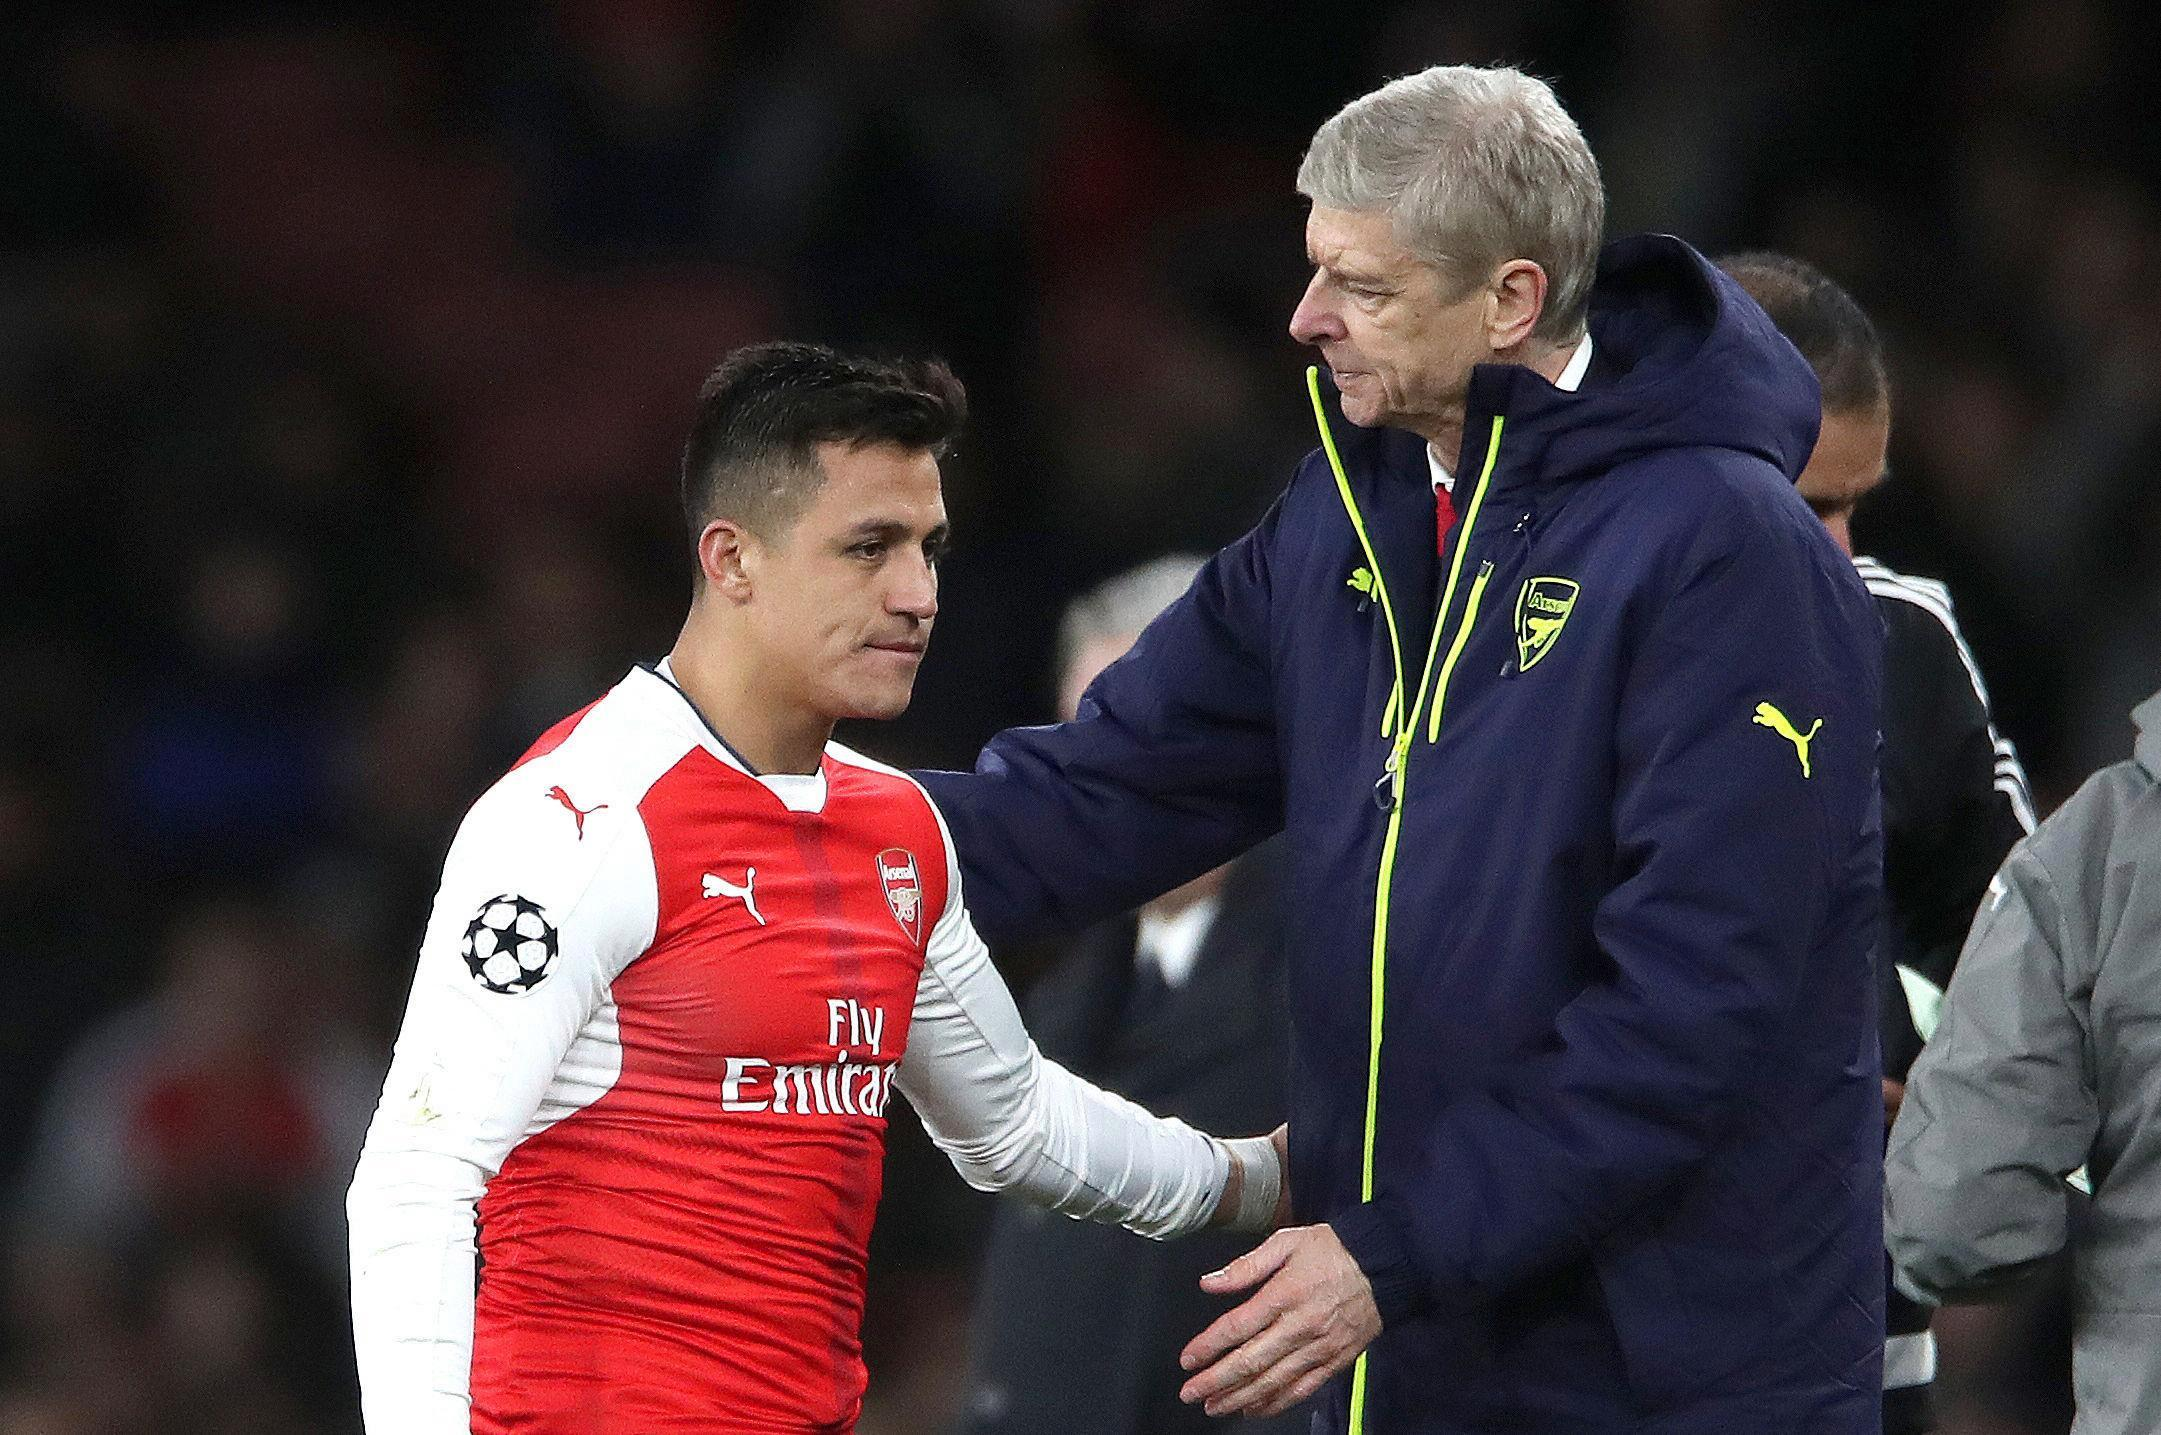 Arsene Wenger admits Arsenal were at fault for Alexis Sanchez missing doping test but insists he is NOT a drug cheat